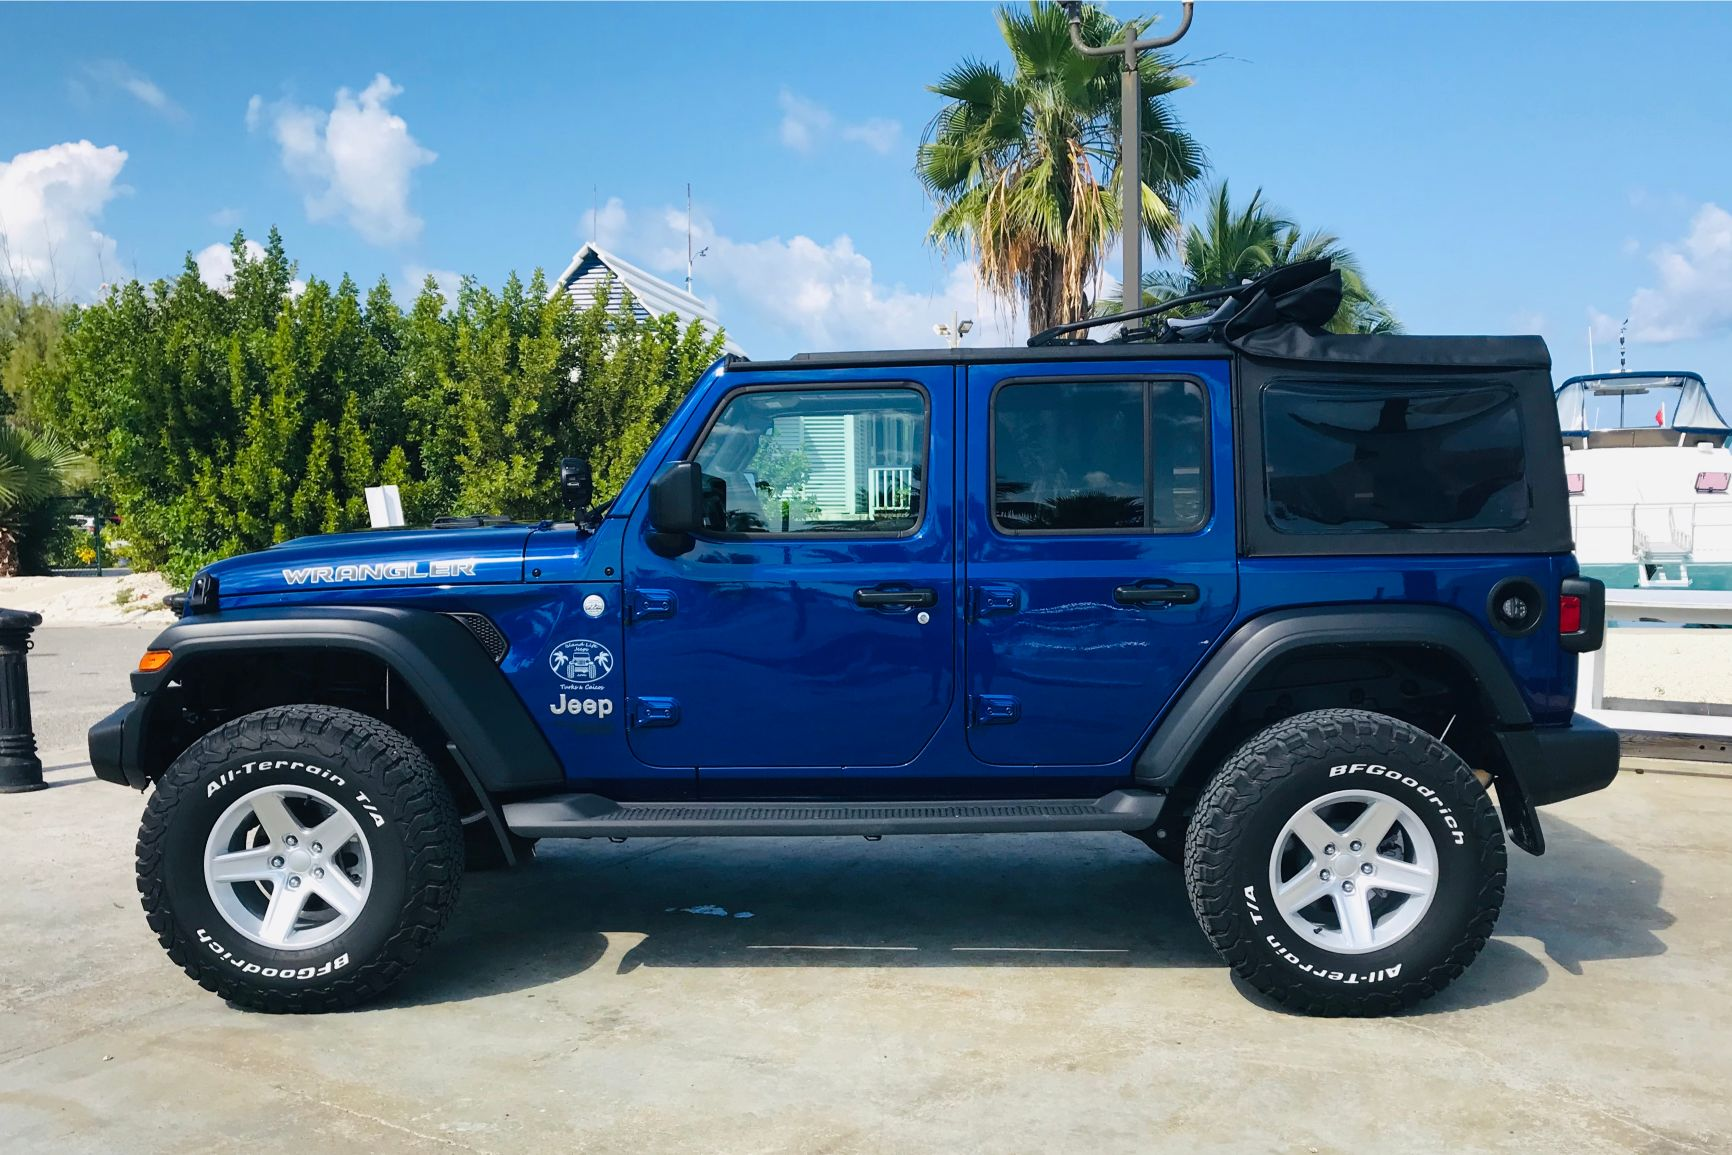 Ocean Blue 4-Door Jeep Wrangler Unlimited